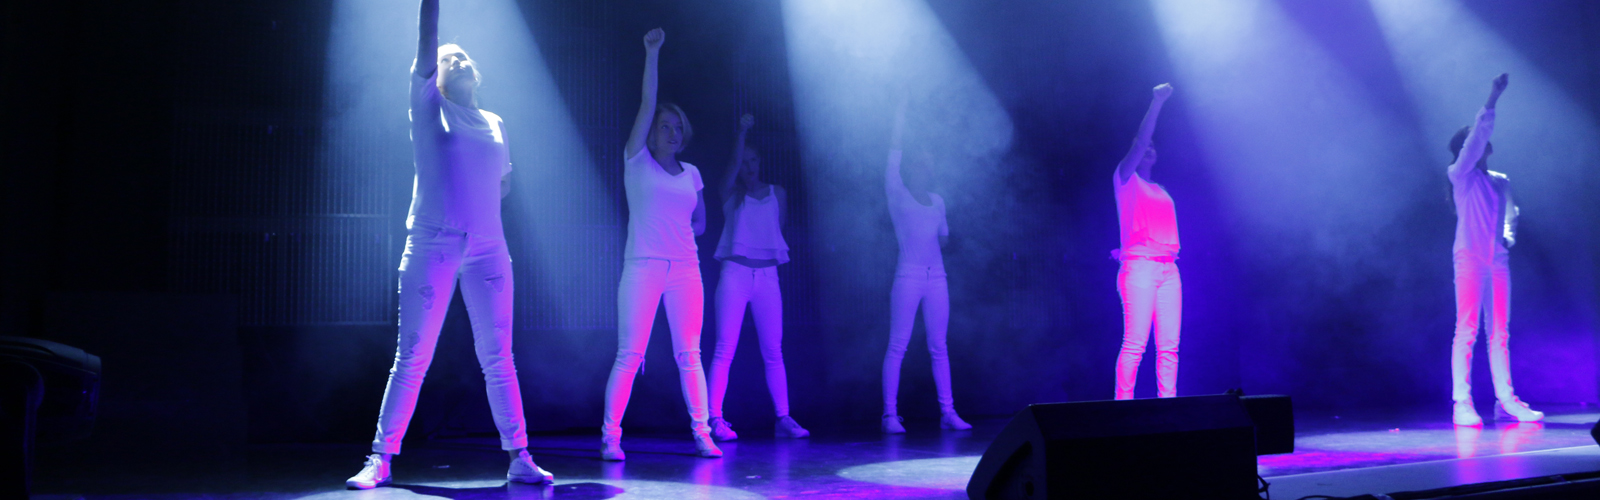 Slide background